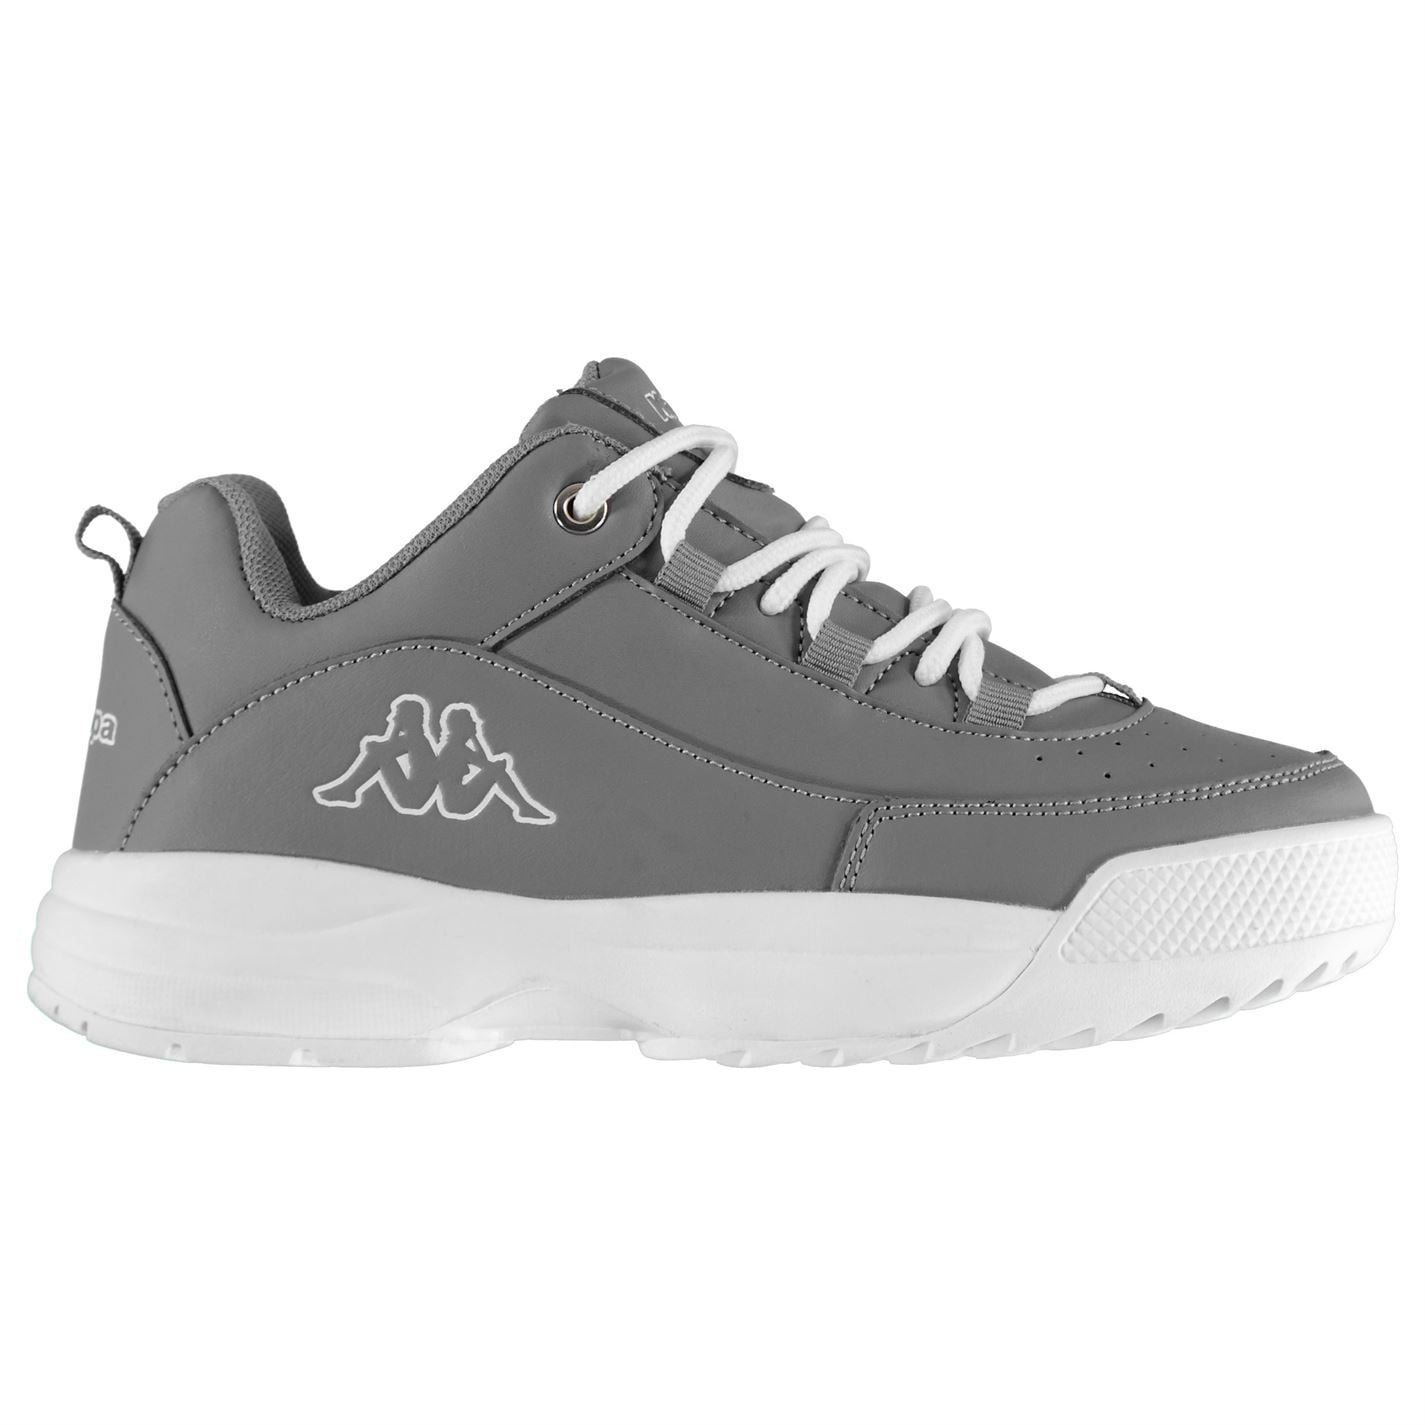 Kappa Montague Childrens Trainers Grey/White